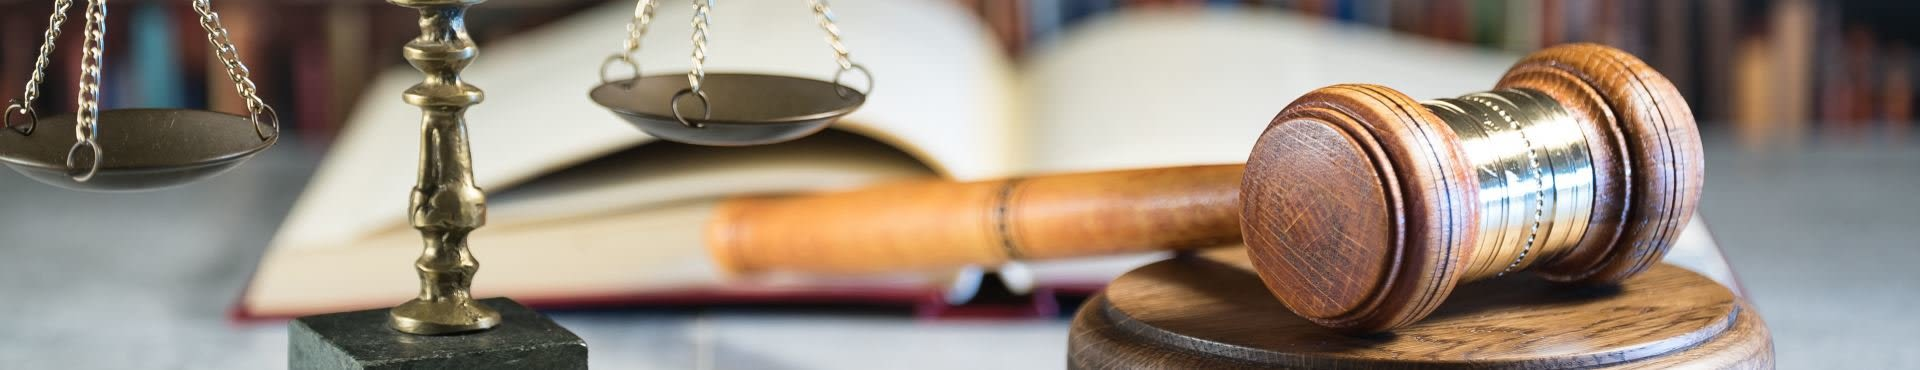 Shine Lawyers | Gavel, scales and law books | Shine Lawyers